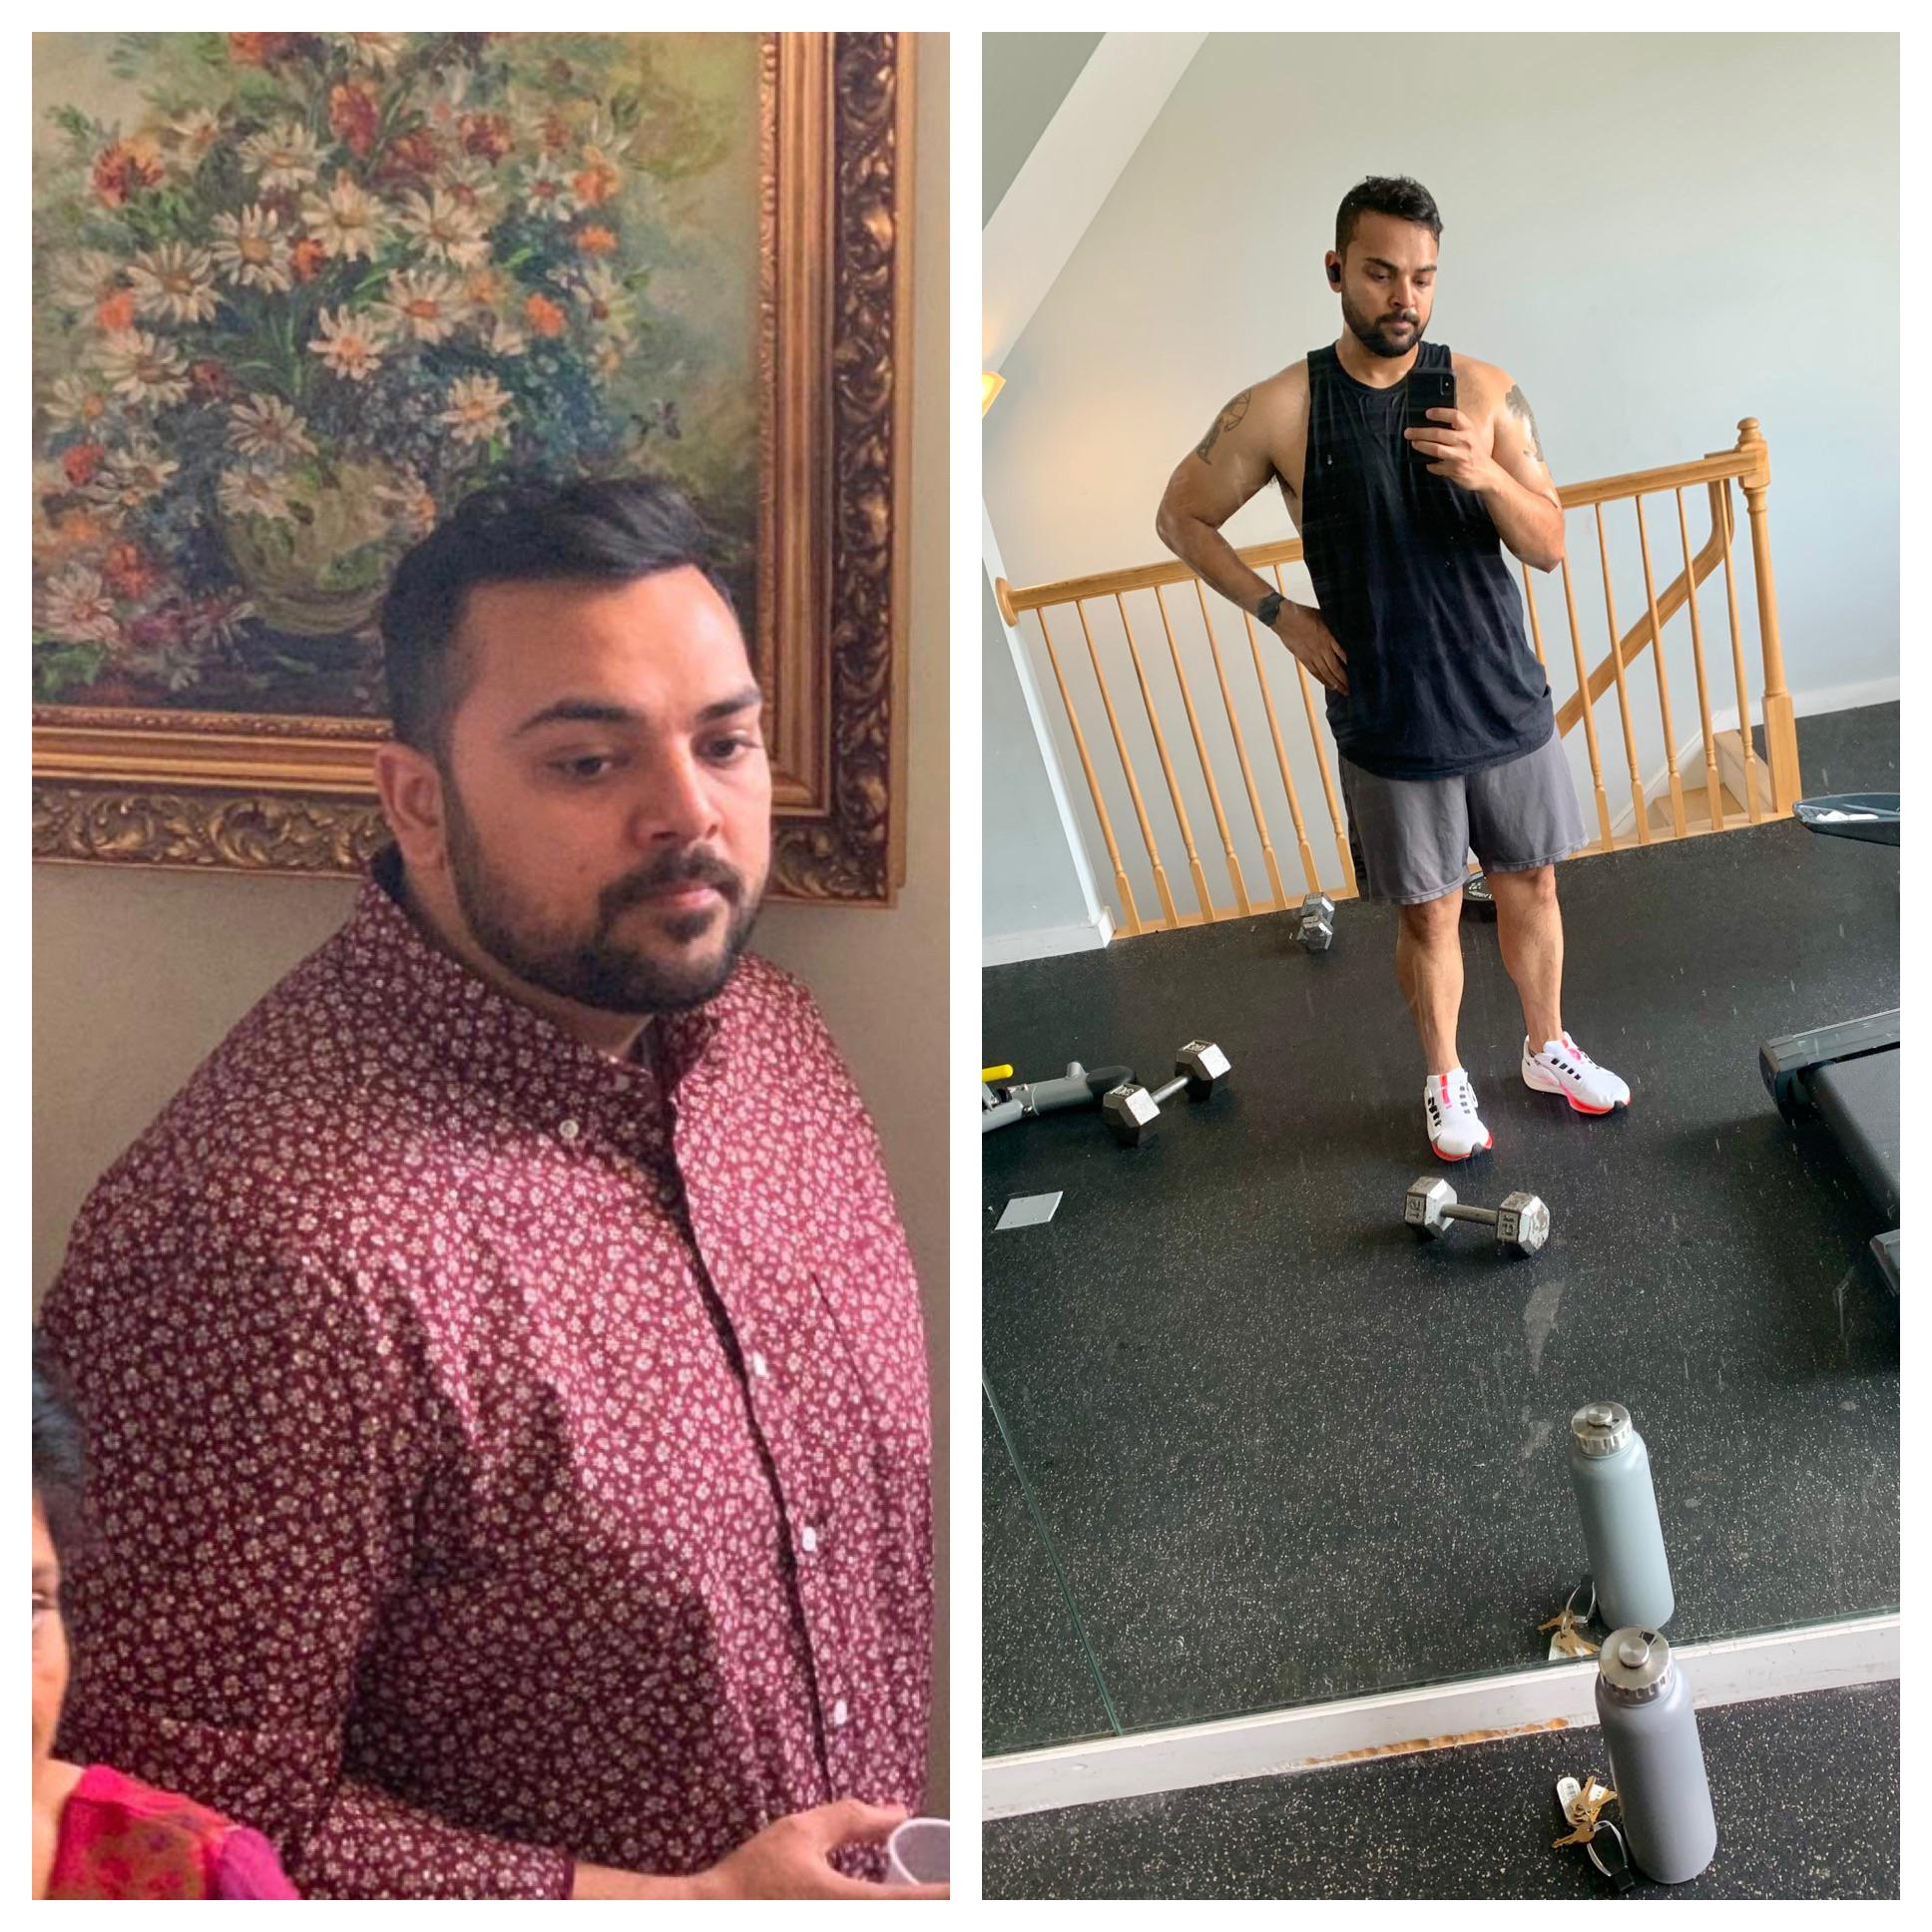 36 lbs Weight Loss Before and After 5 foot 8 Male 230 lbs to 194 lbs